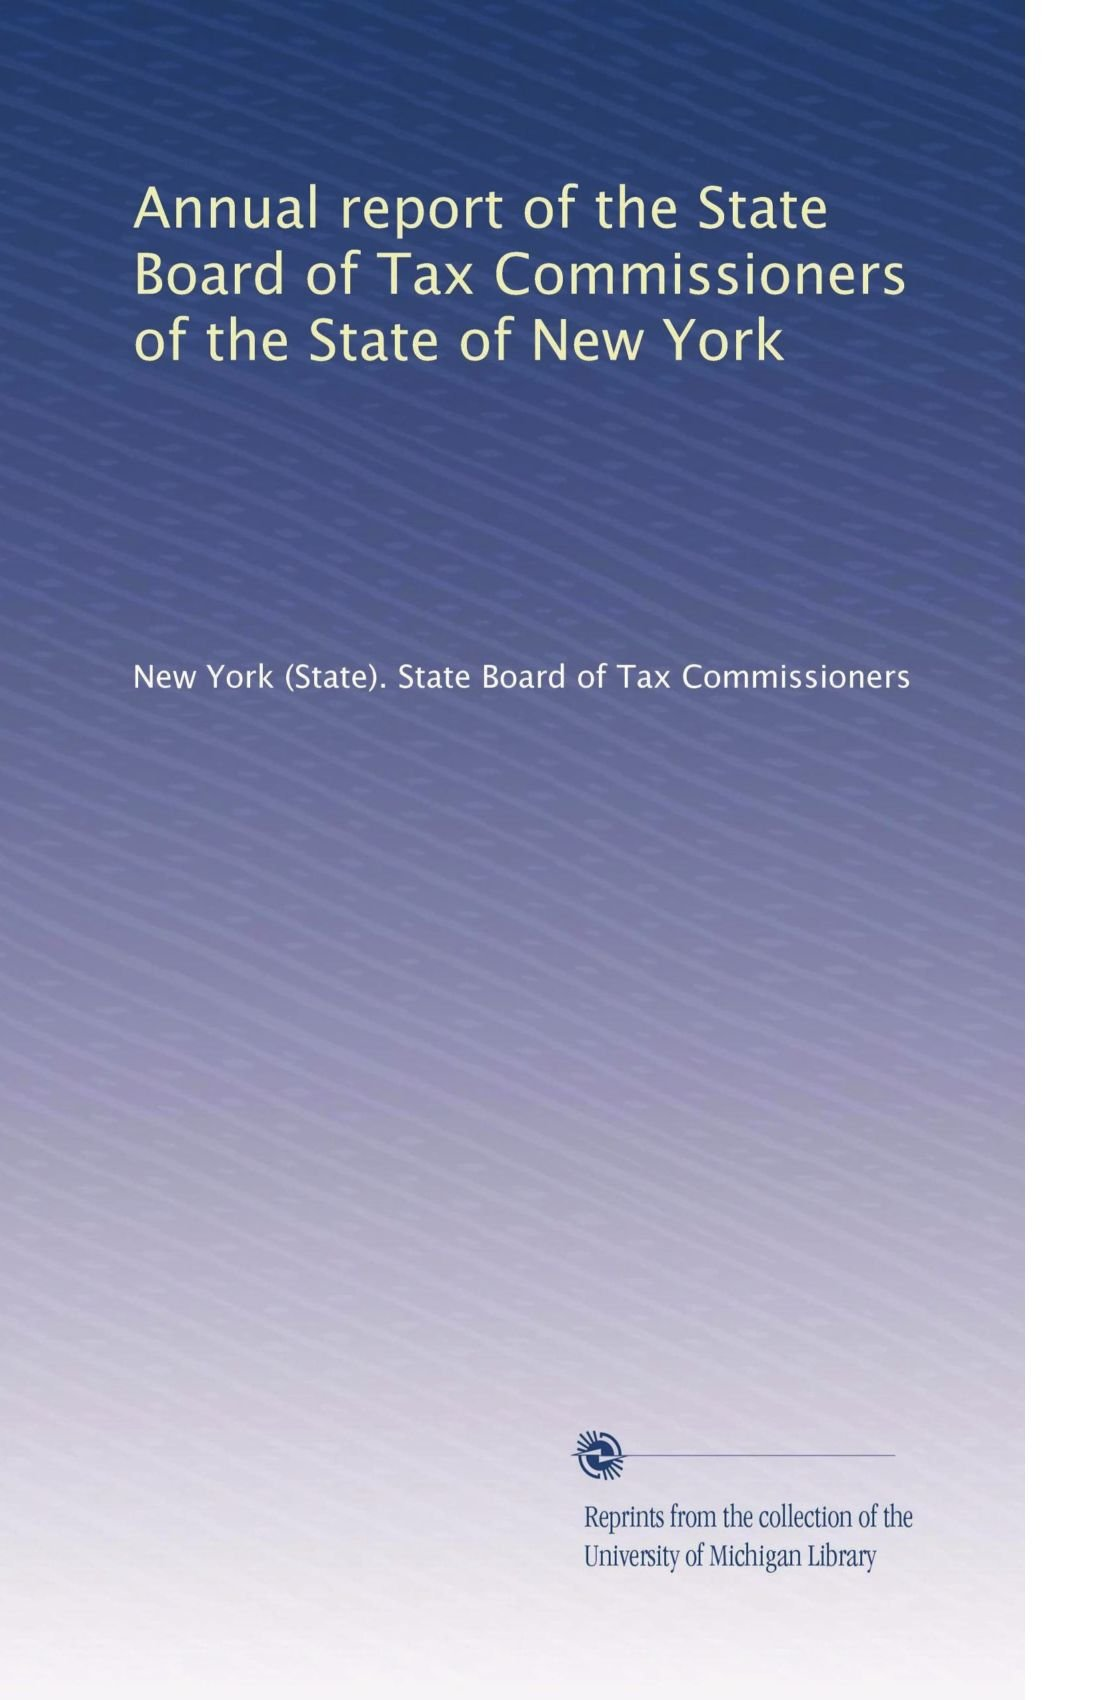 Annual report of the State Board of Tax Commissioners of the State of New York (Volume 4) pdf